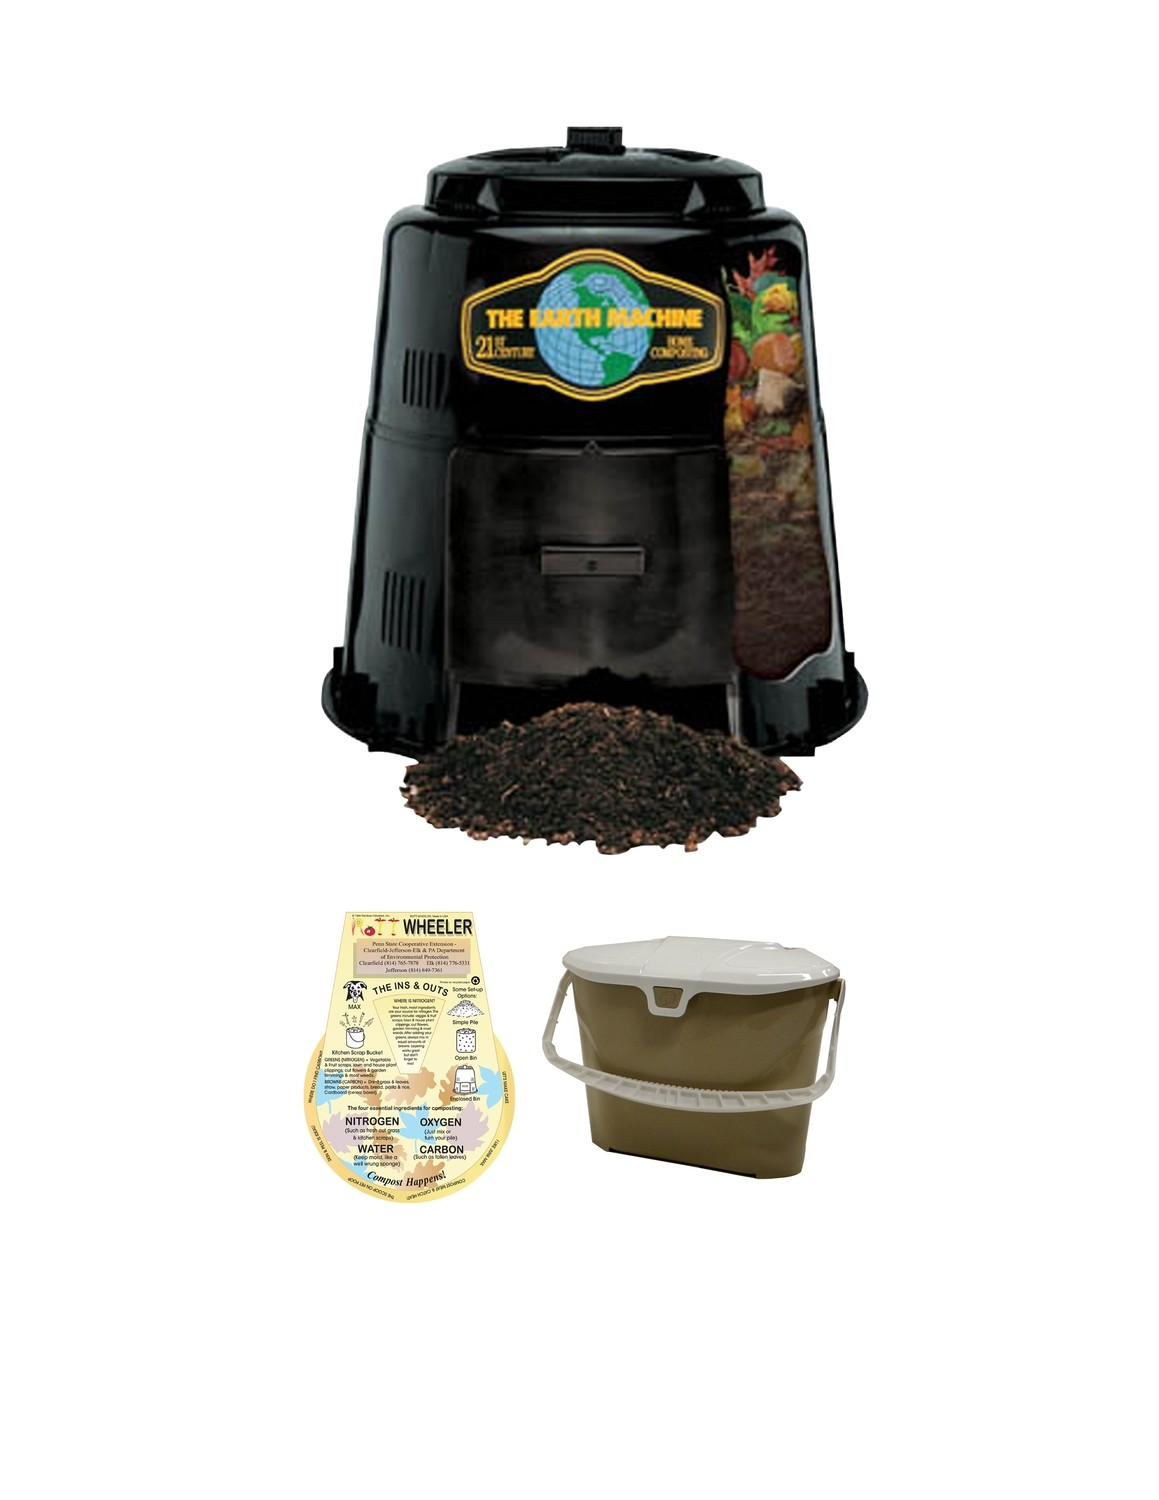 KIT 1 - includes the Rottwheeler & 2 gallon tan Kitchen Collector